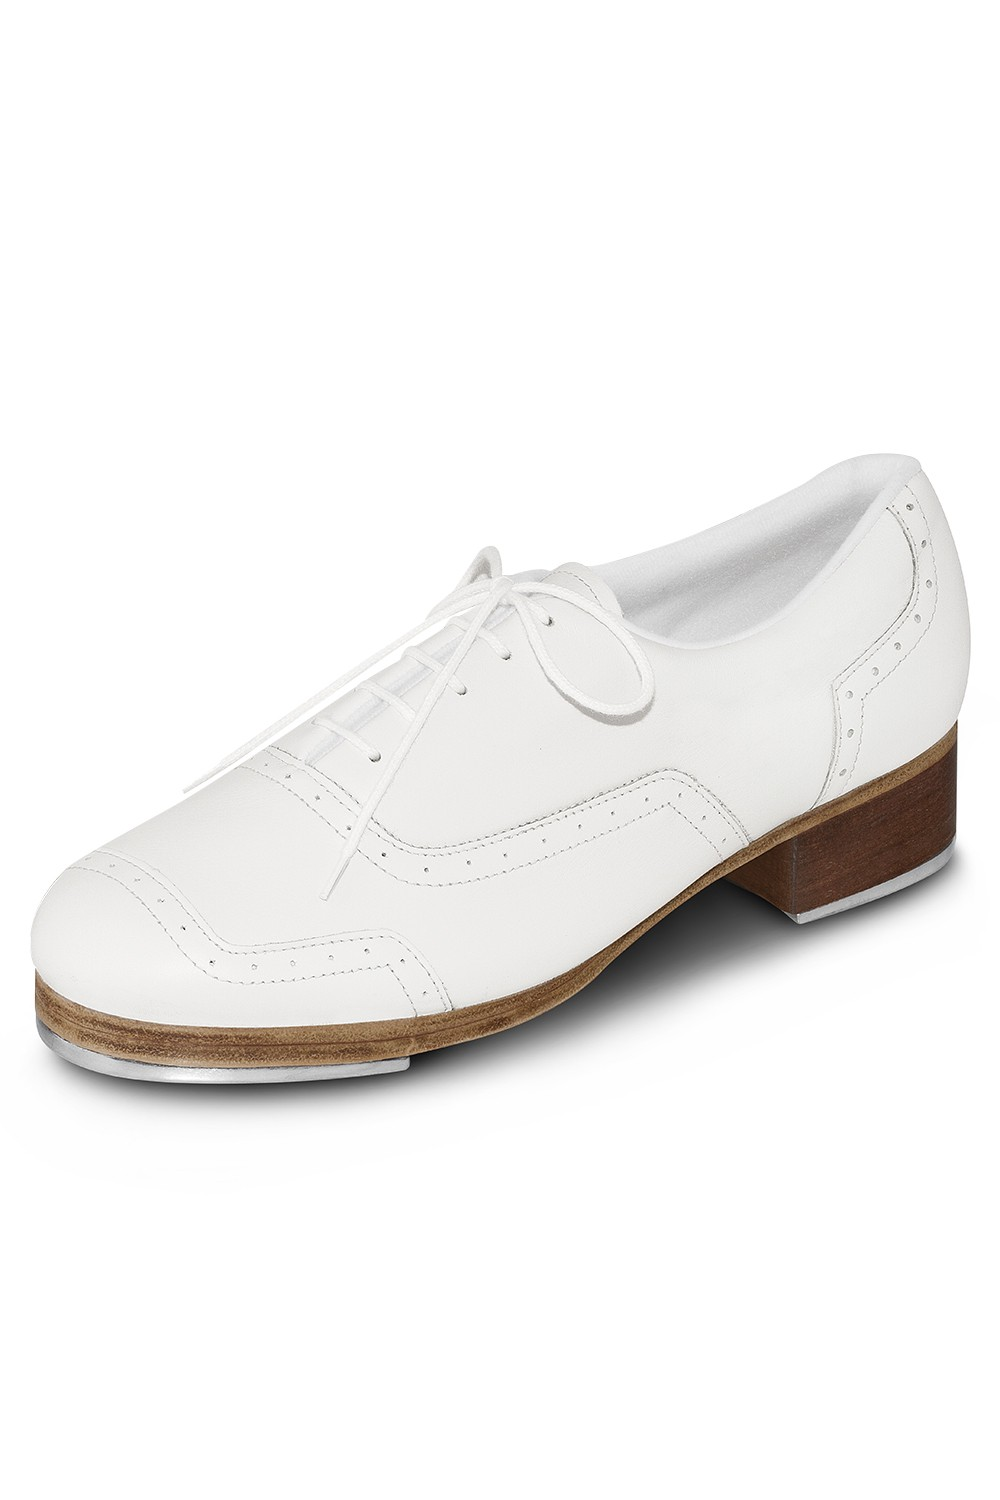 Jason Samuels Smith - Uomo Men's Tap Shoes